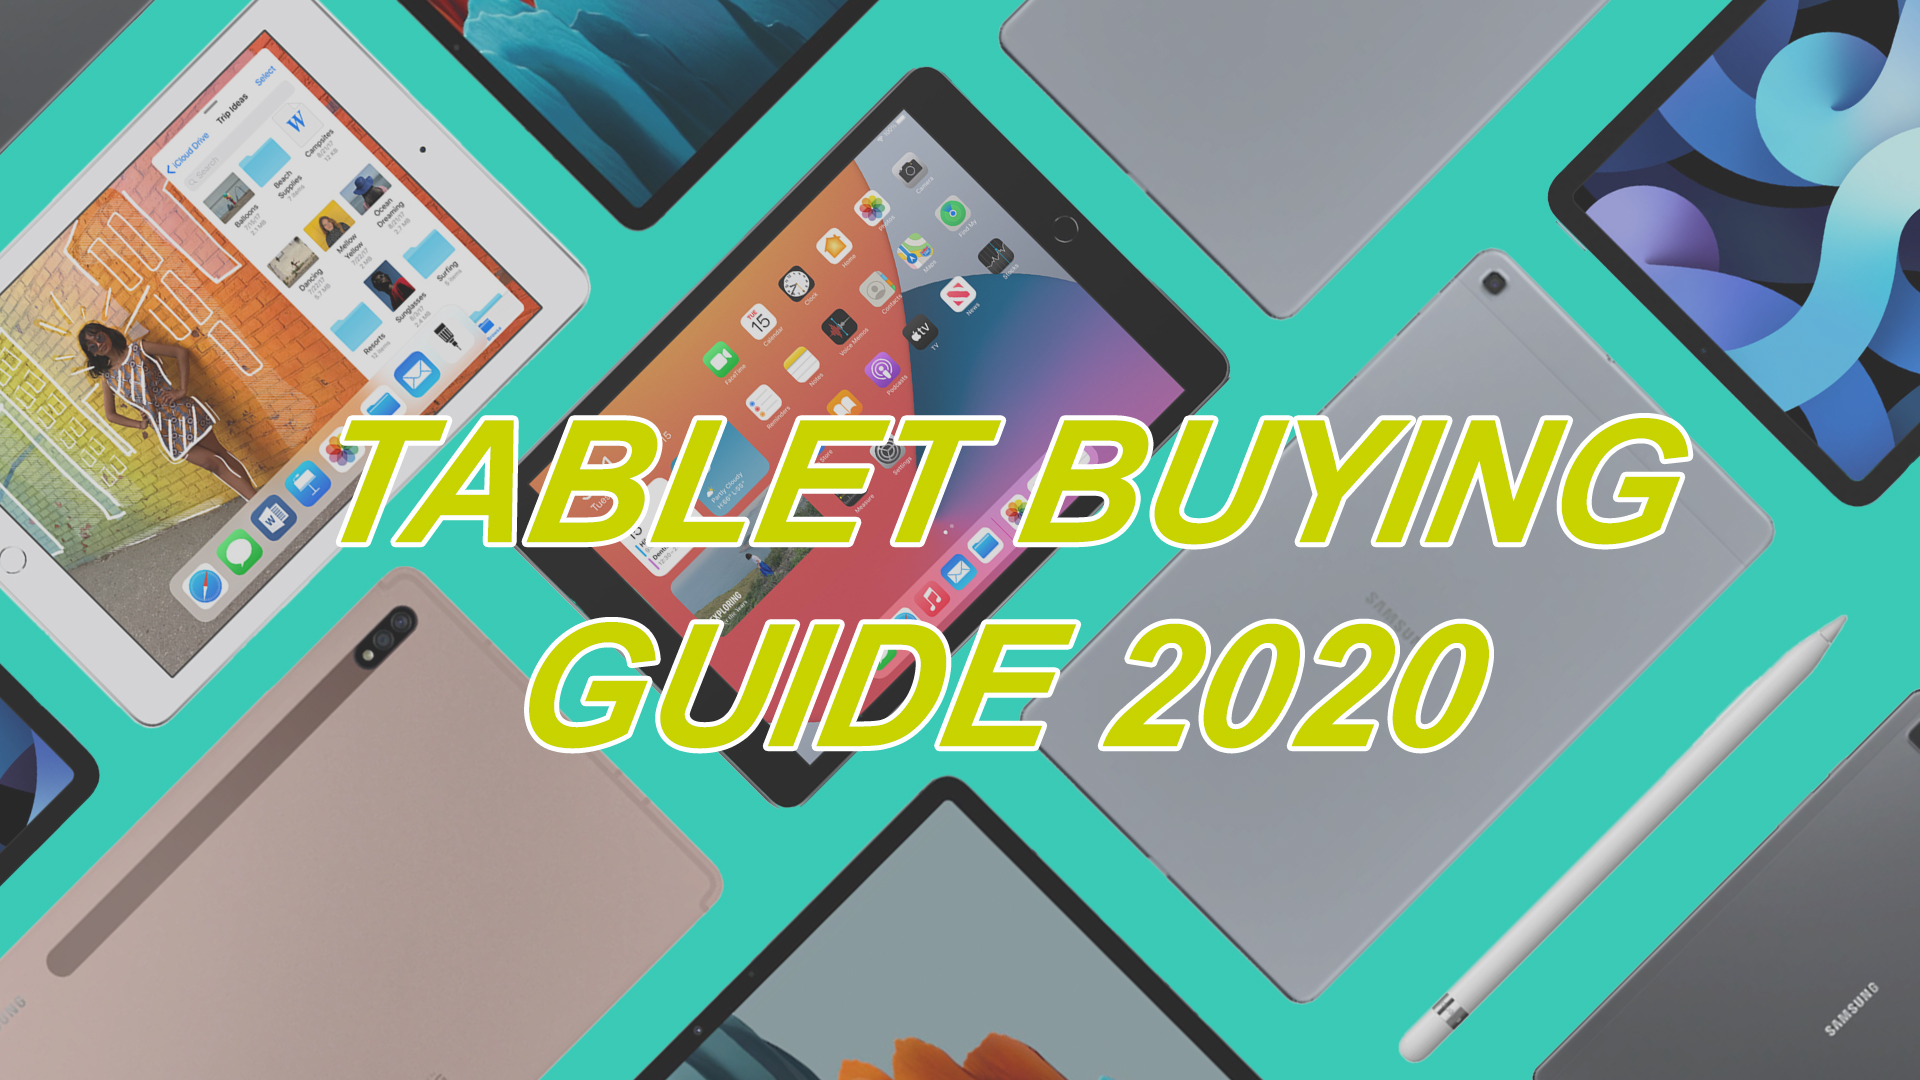 Tablet Buying Guide 2020: These Are the Features You Should Look Out For